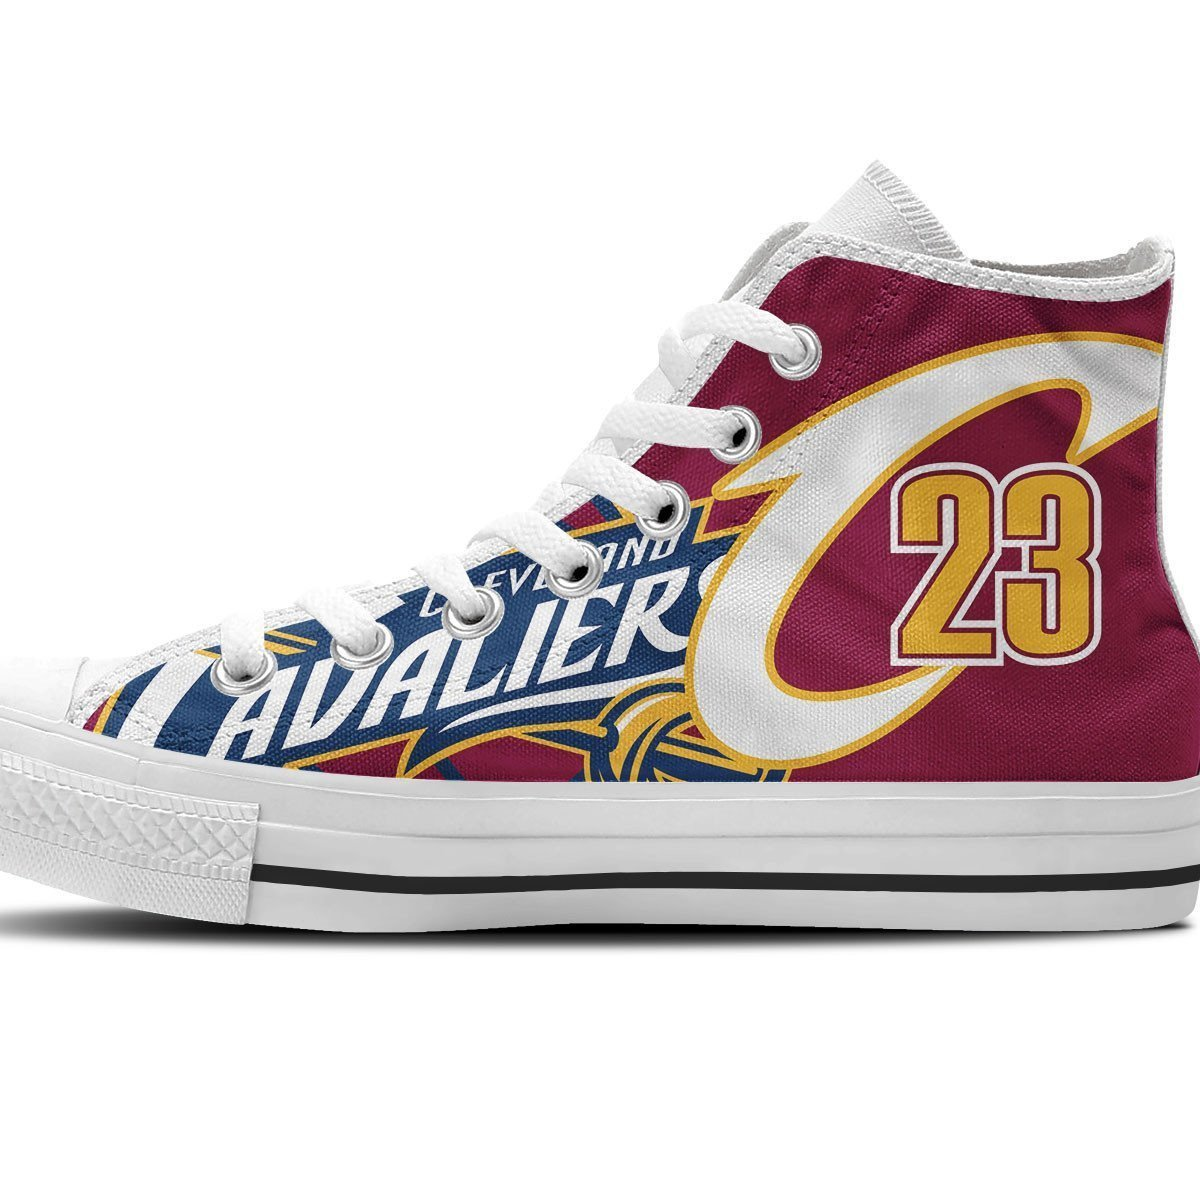 lebron james ladies high top sneakers